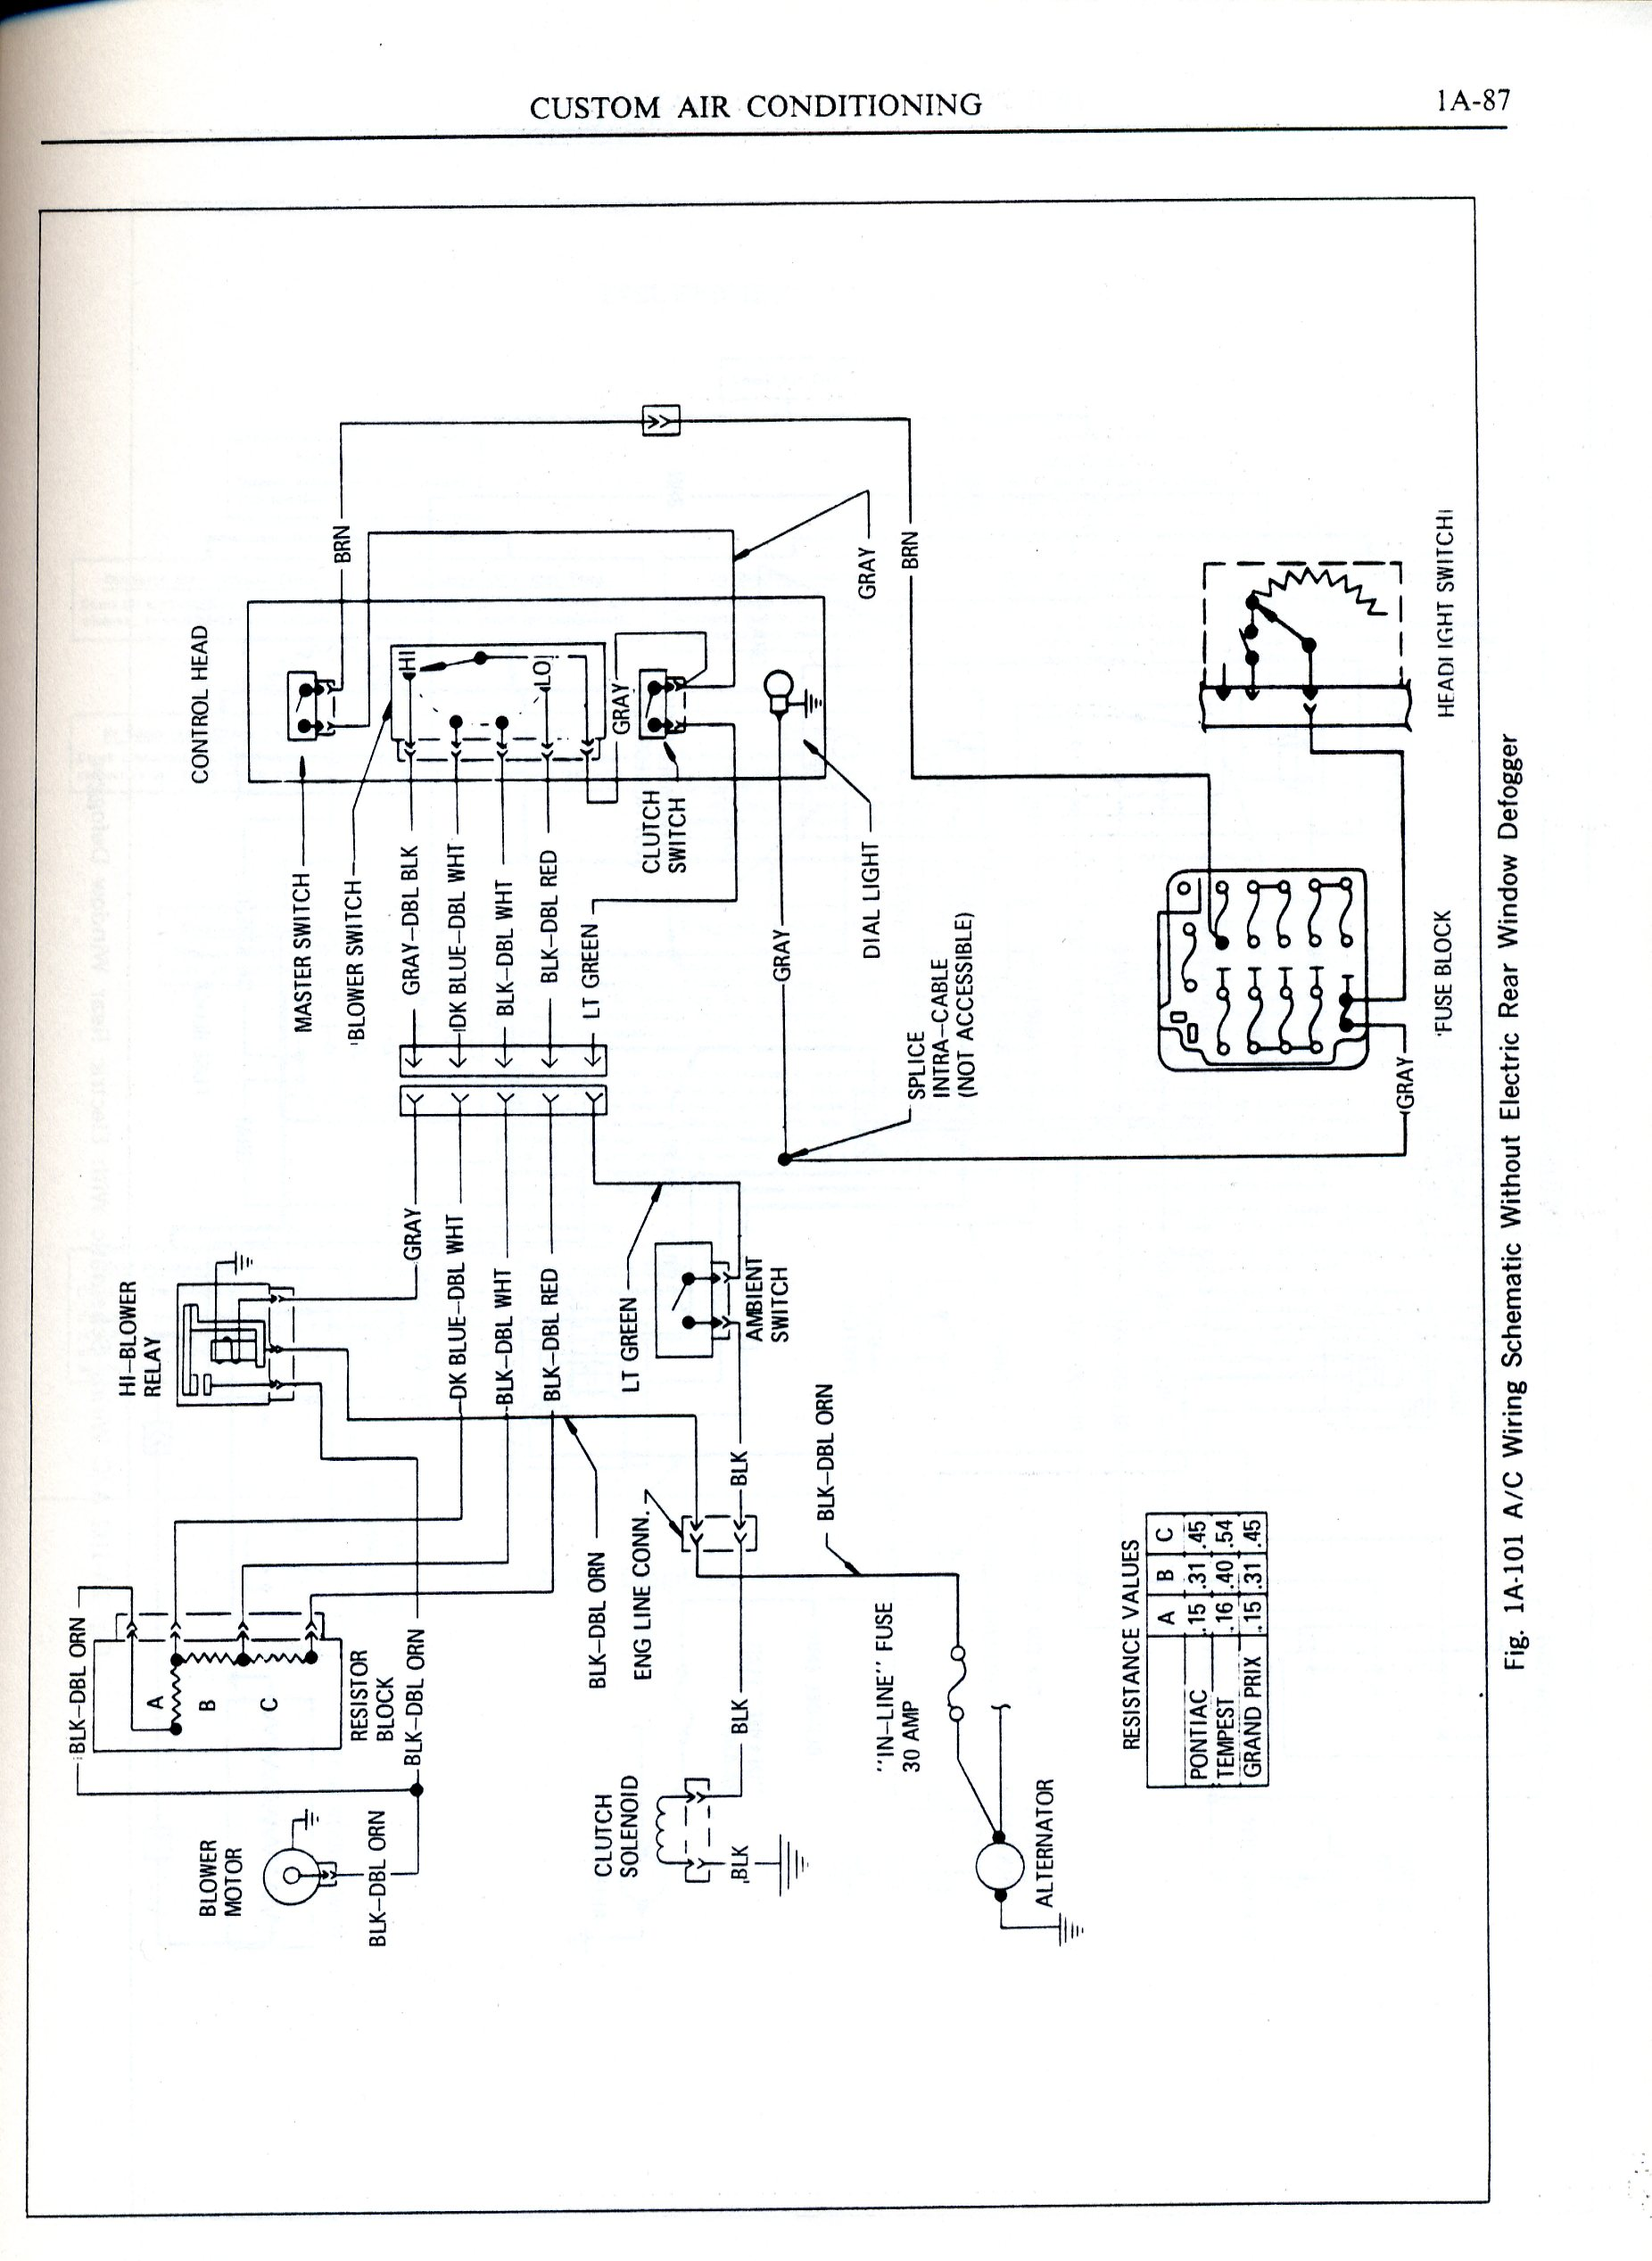 Wiring Schematic For 1970 Gto Judge Layout Diagrams Dash Tachometer Diagram 1965 Chevelle Ss 1972